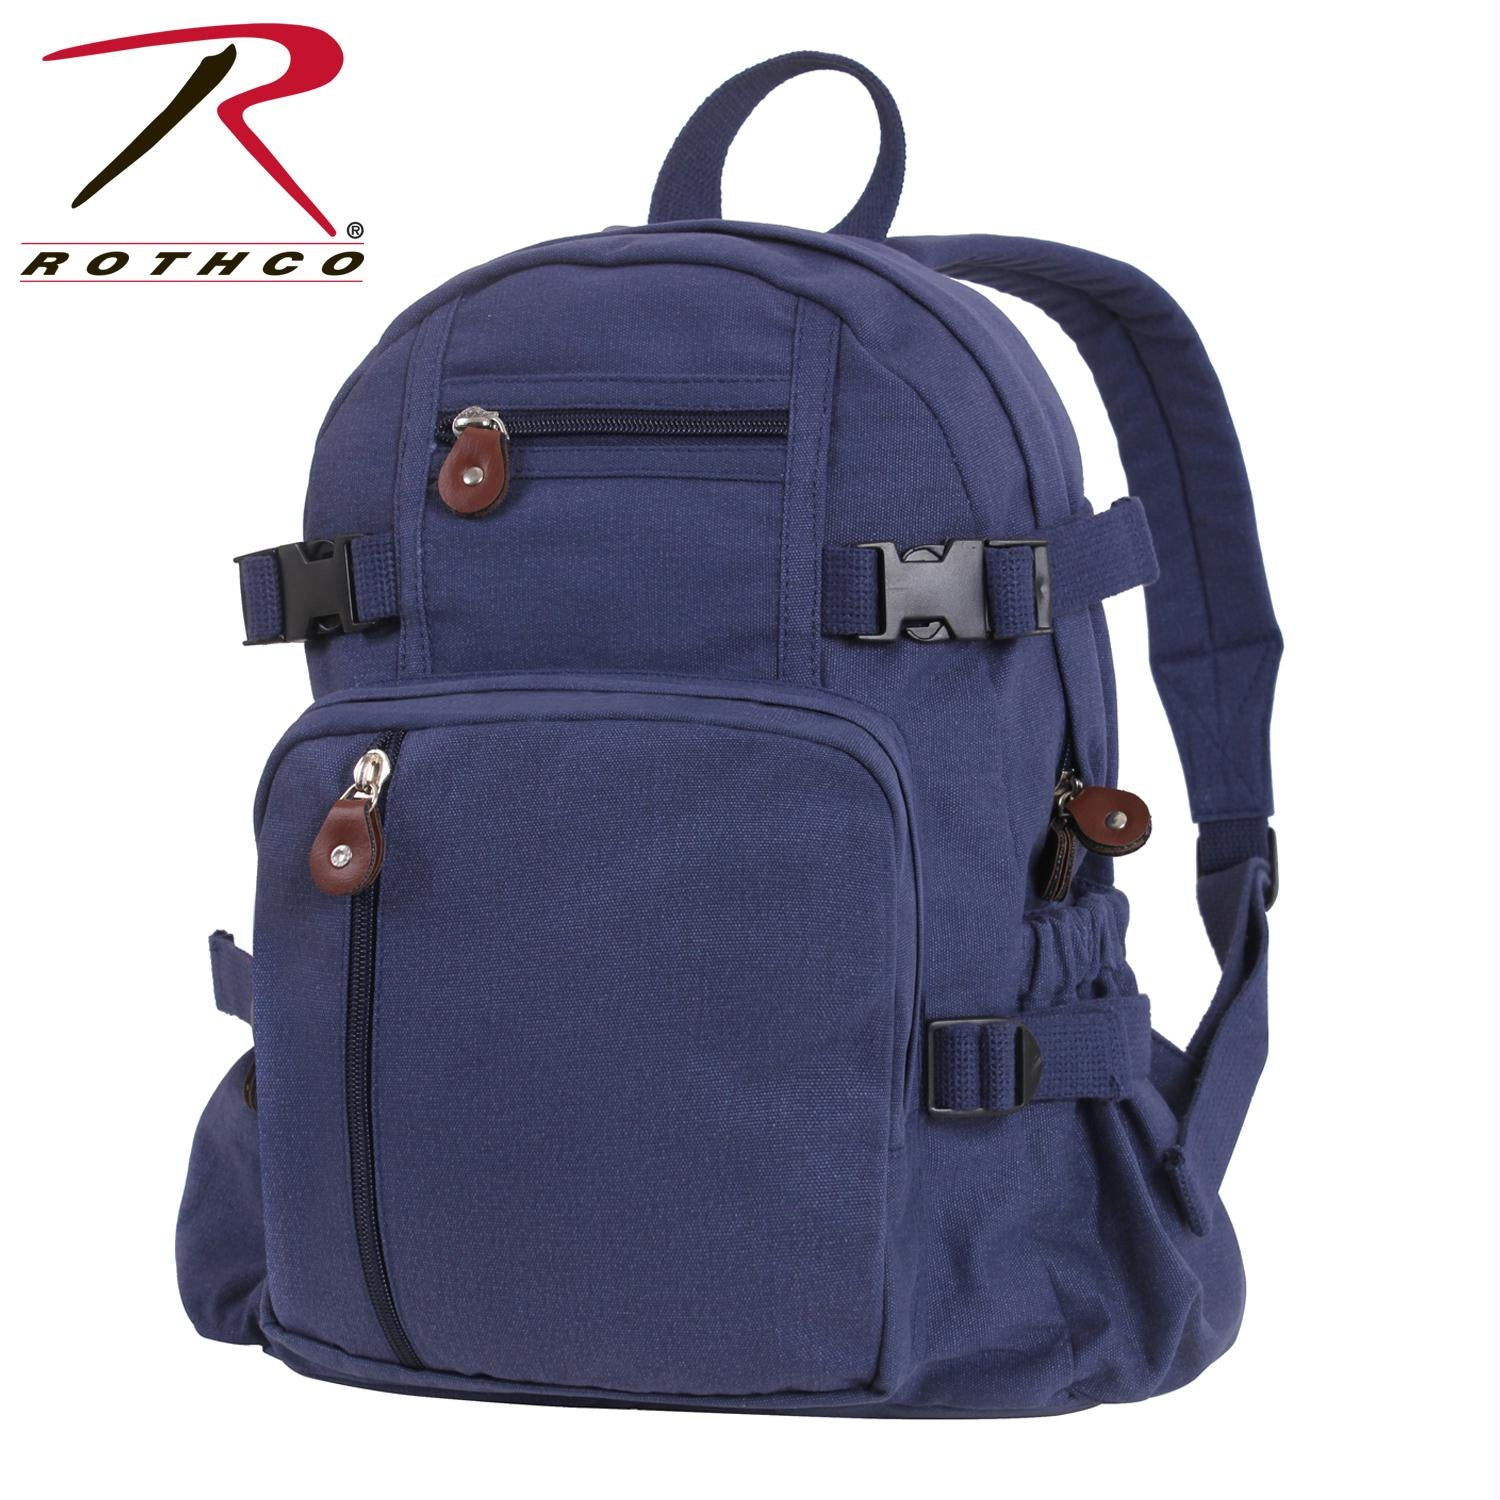 Rothco Vintage Canvas Mini Backpack - Navy Blue